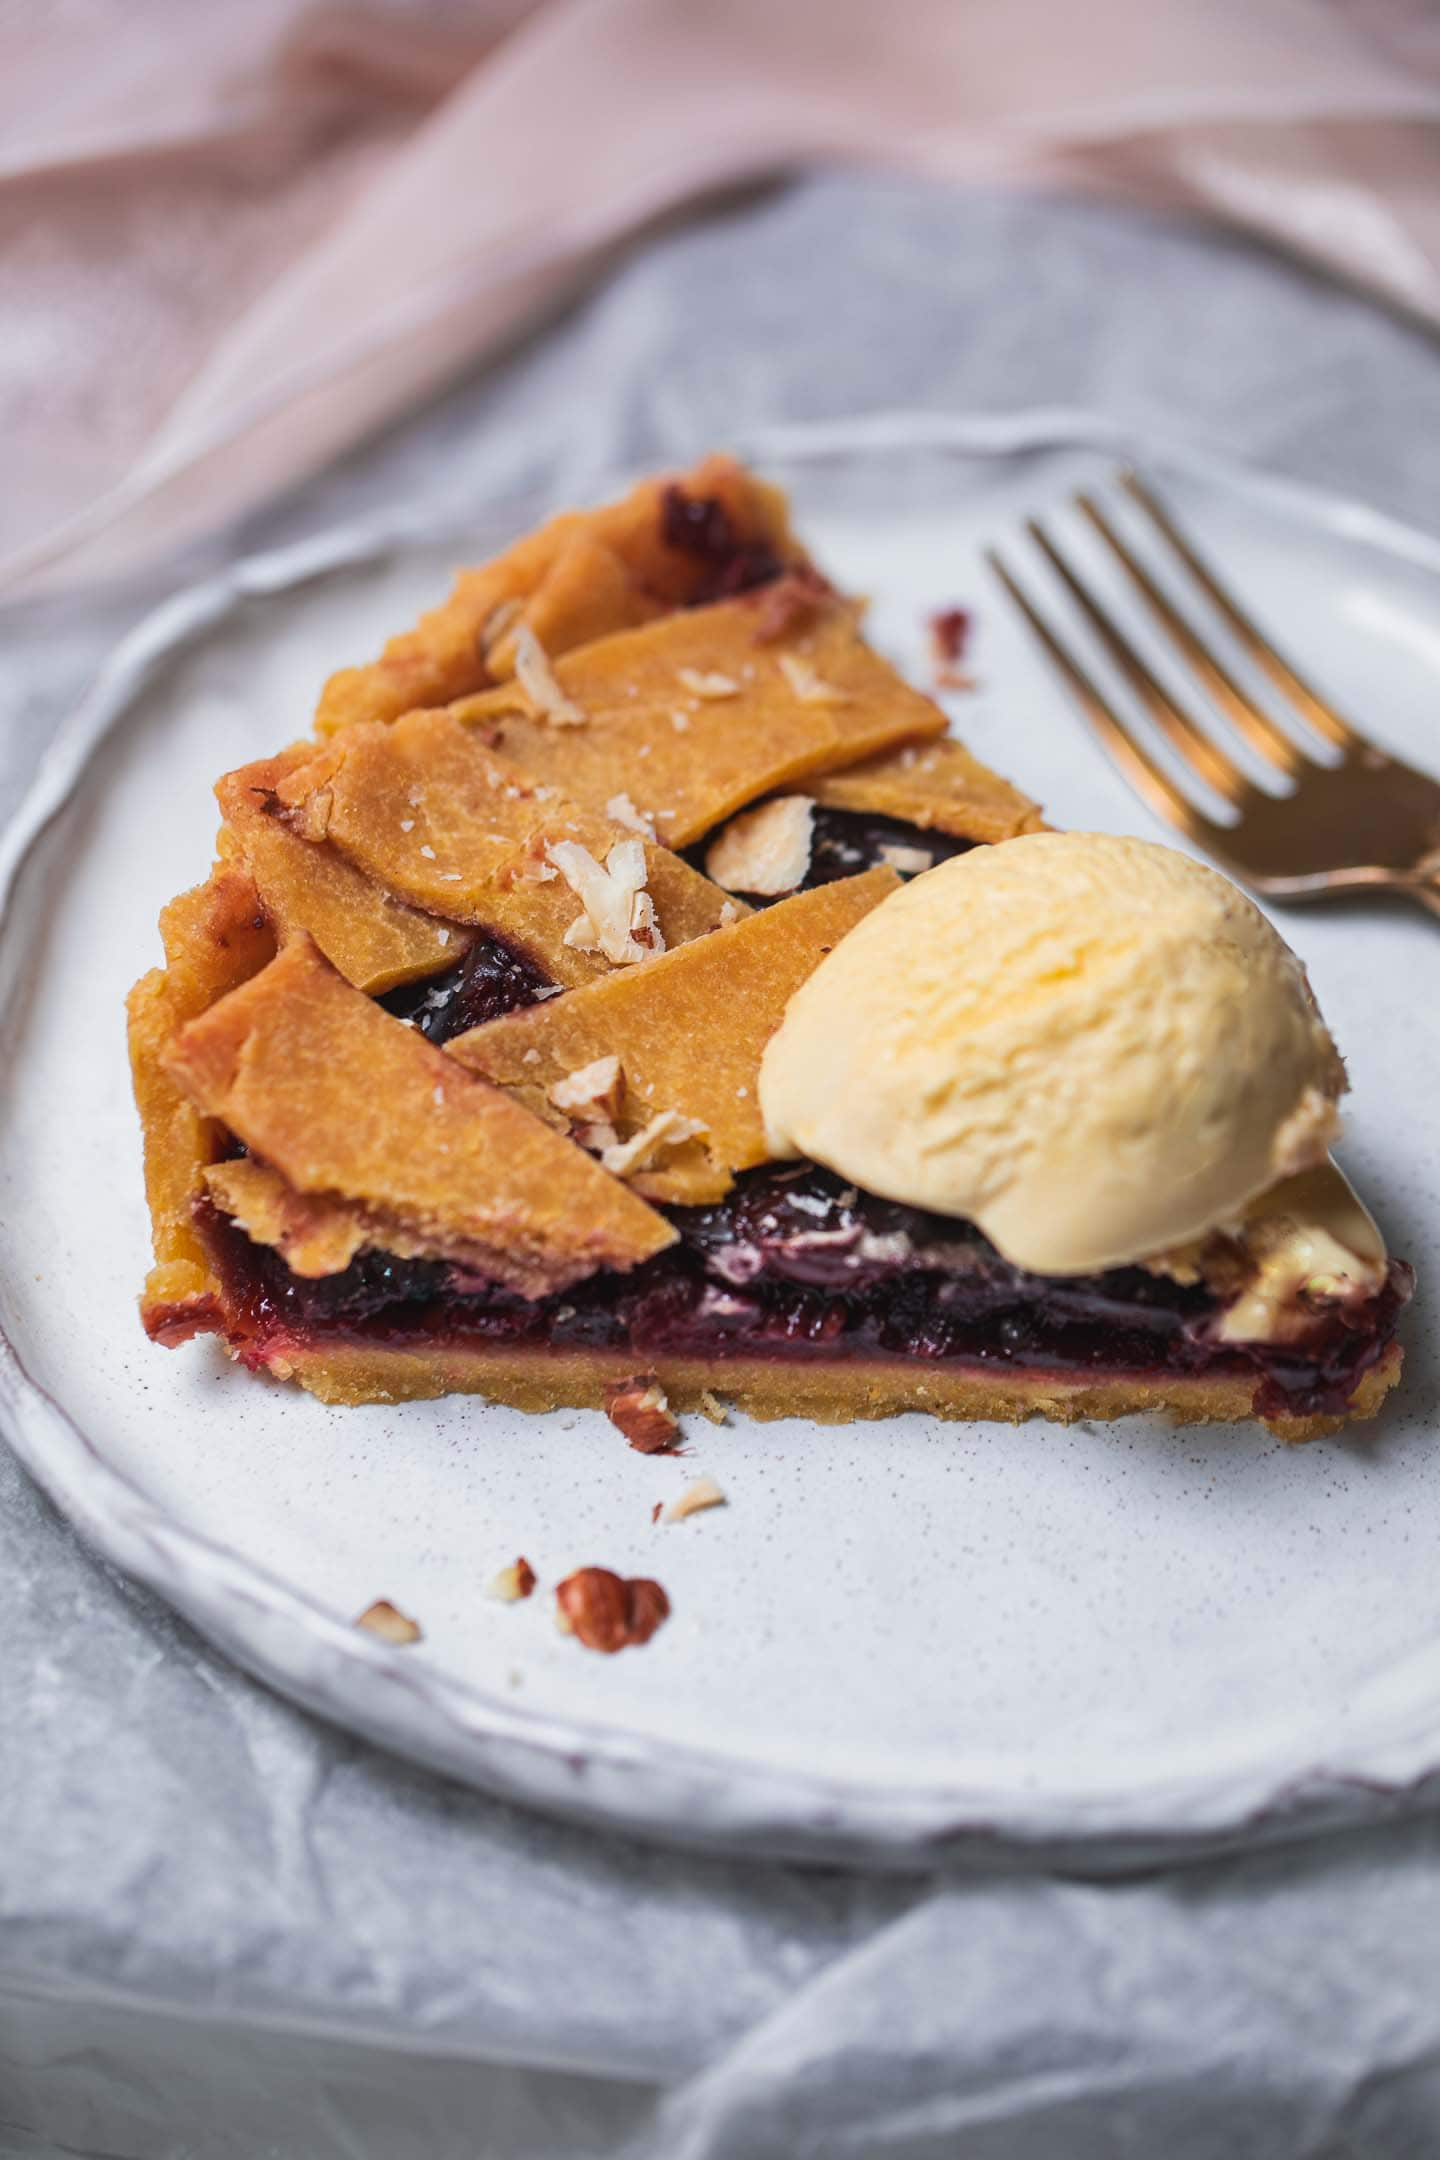 Slice of vegan pie with a cherry filling and dairy-free ice cream